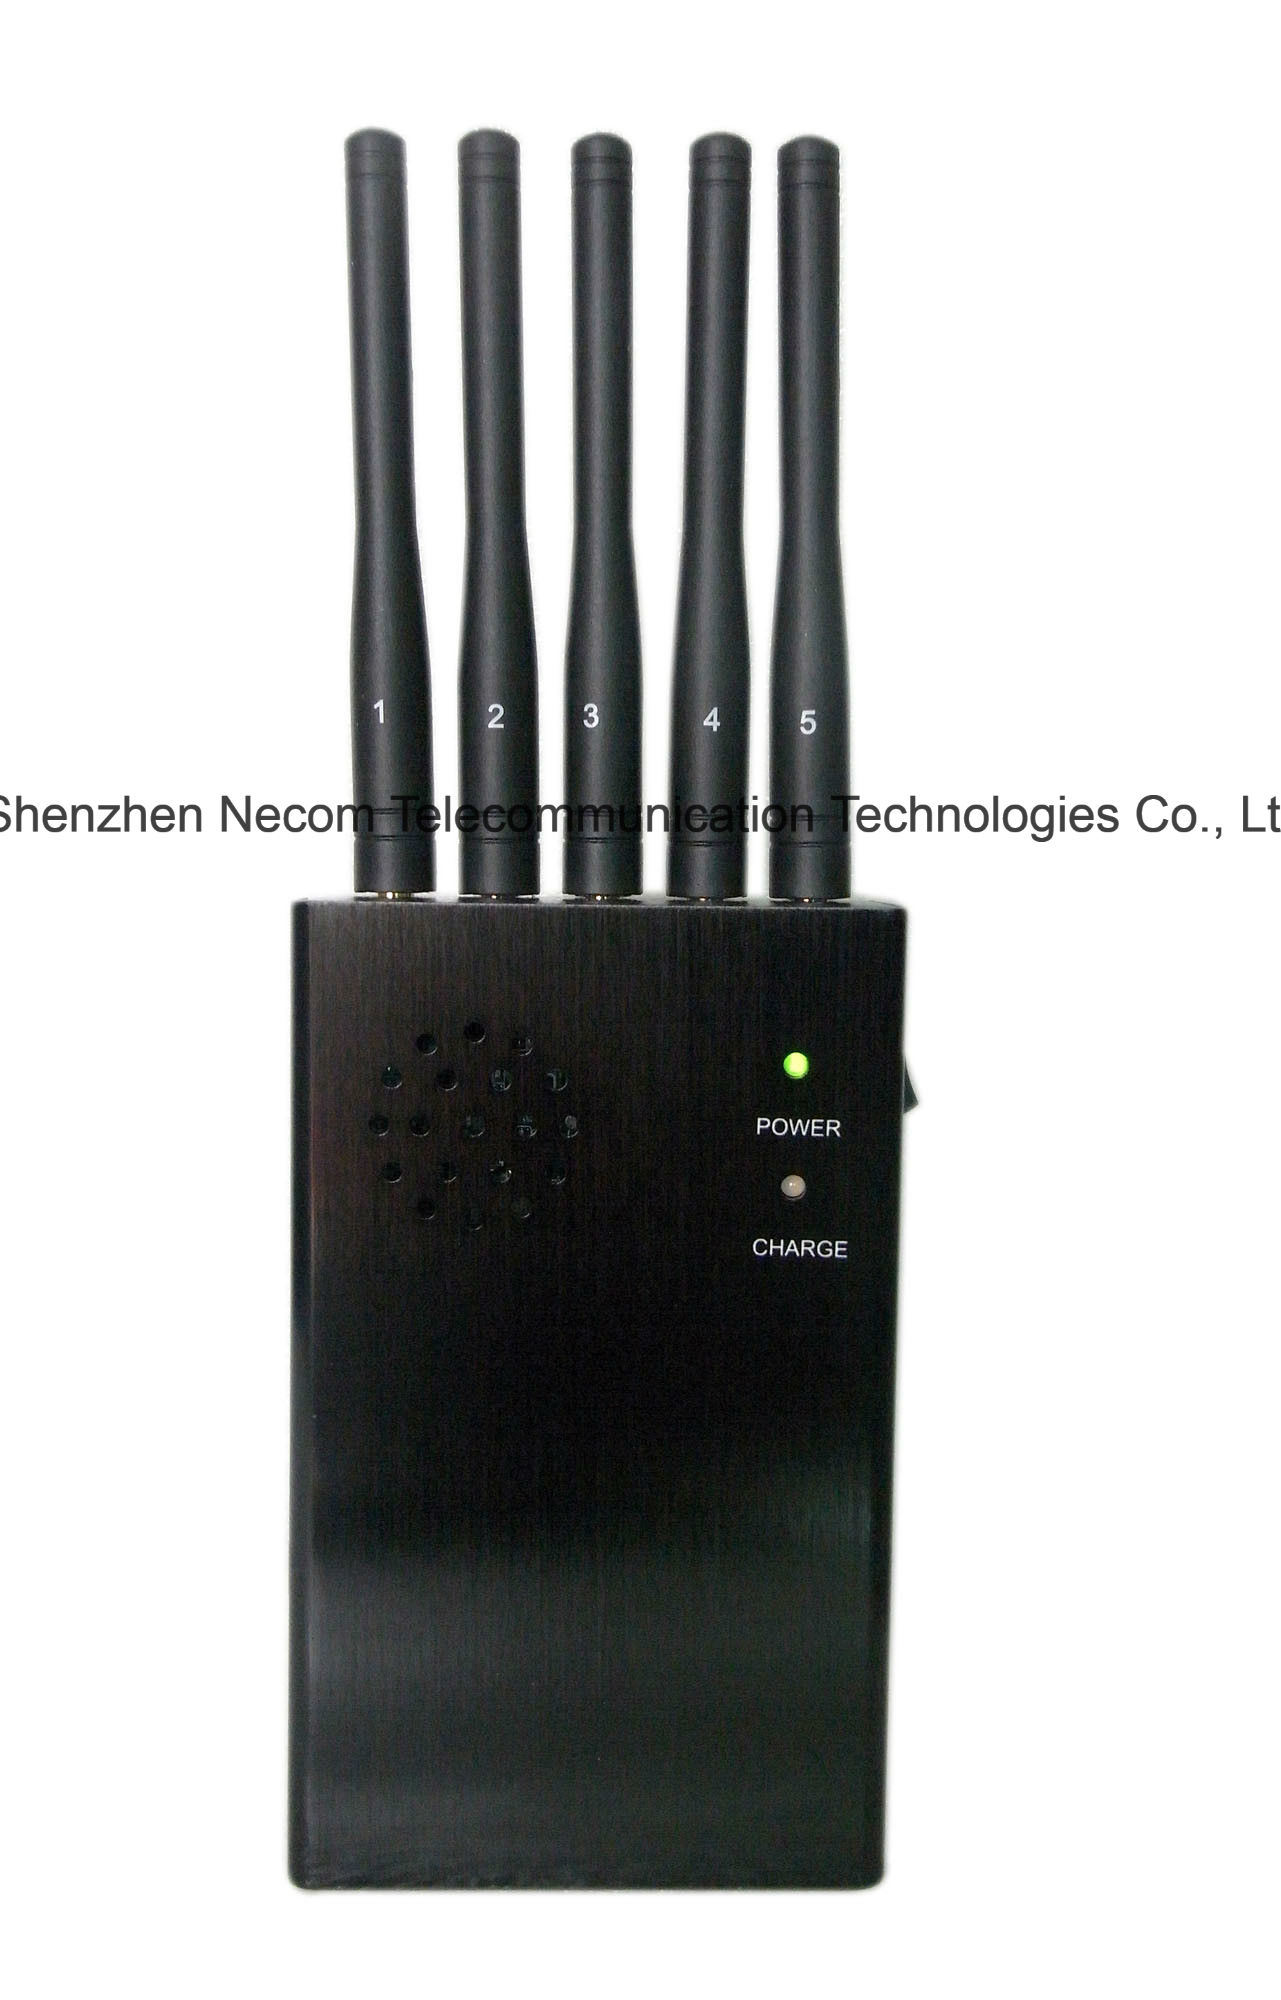 Cell phone blocker best buy , China Wireless Cell Phone Signal Jammer CDMA GSM Dcs Phs 3G, Five Antenna, Wireless GPS & WiFi Cell Phone 5 Antenna Portable Jammer - China 5 Band Signal Blockers, Five Antennas Jammers